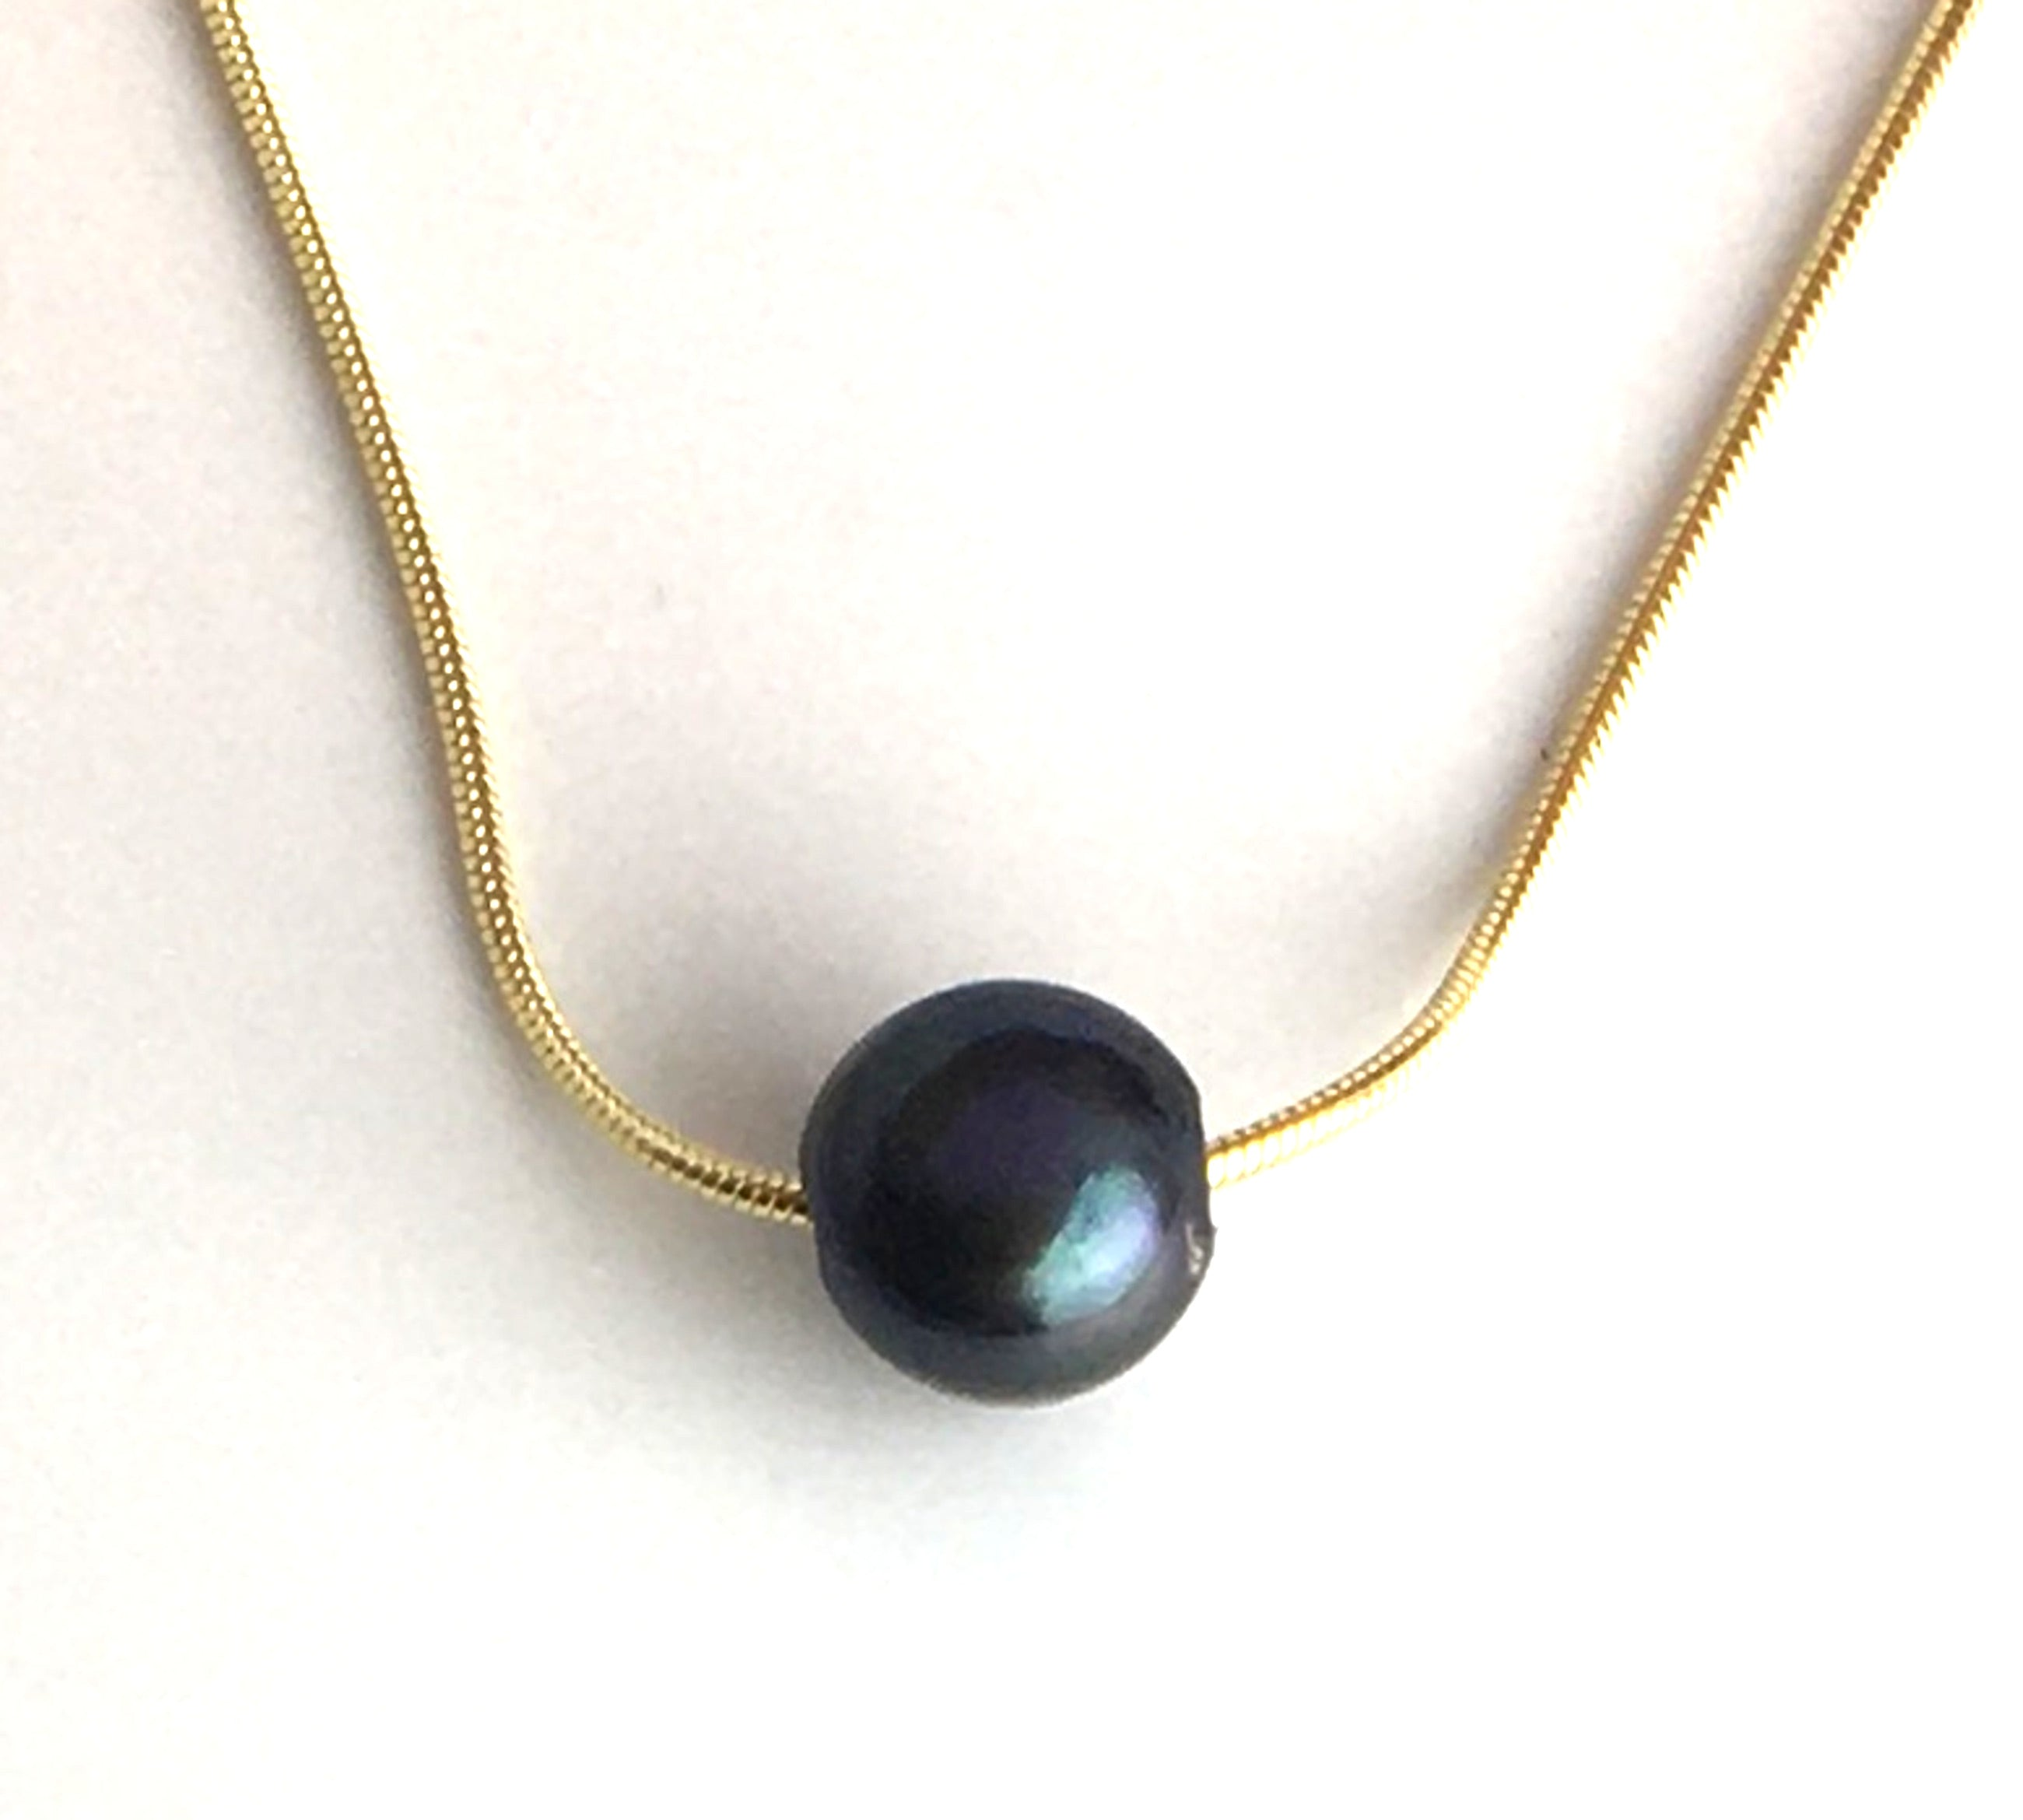 Single Black Pearl on A Gold Plated Sterling Silver Chain